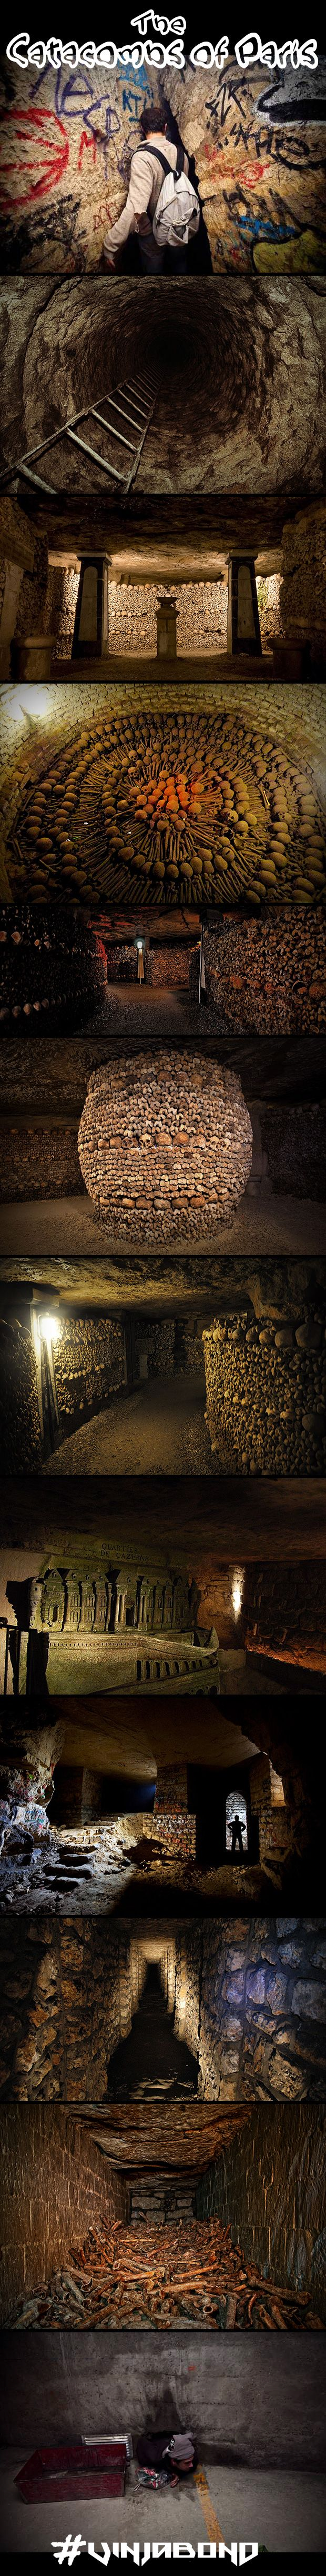 The Catacombs of Paris Experience - Hidden beneath the streets of Paris is 6 million of the dead...and undead! #paris #spooky